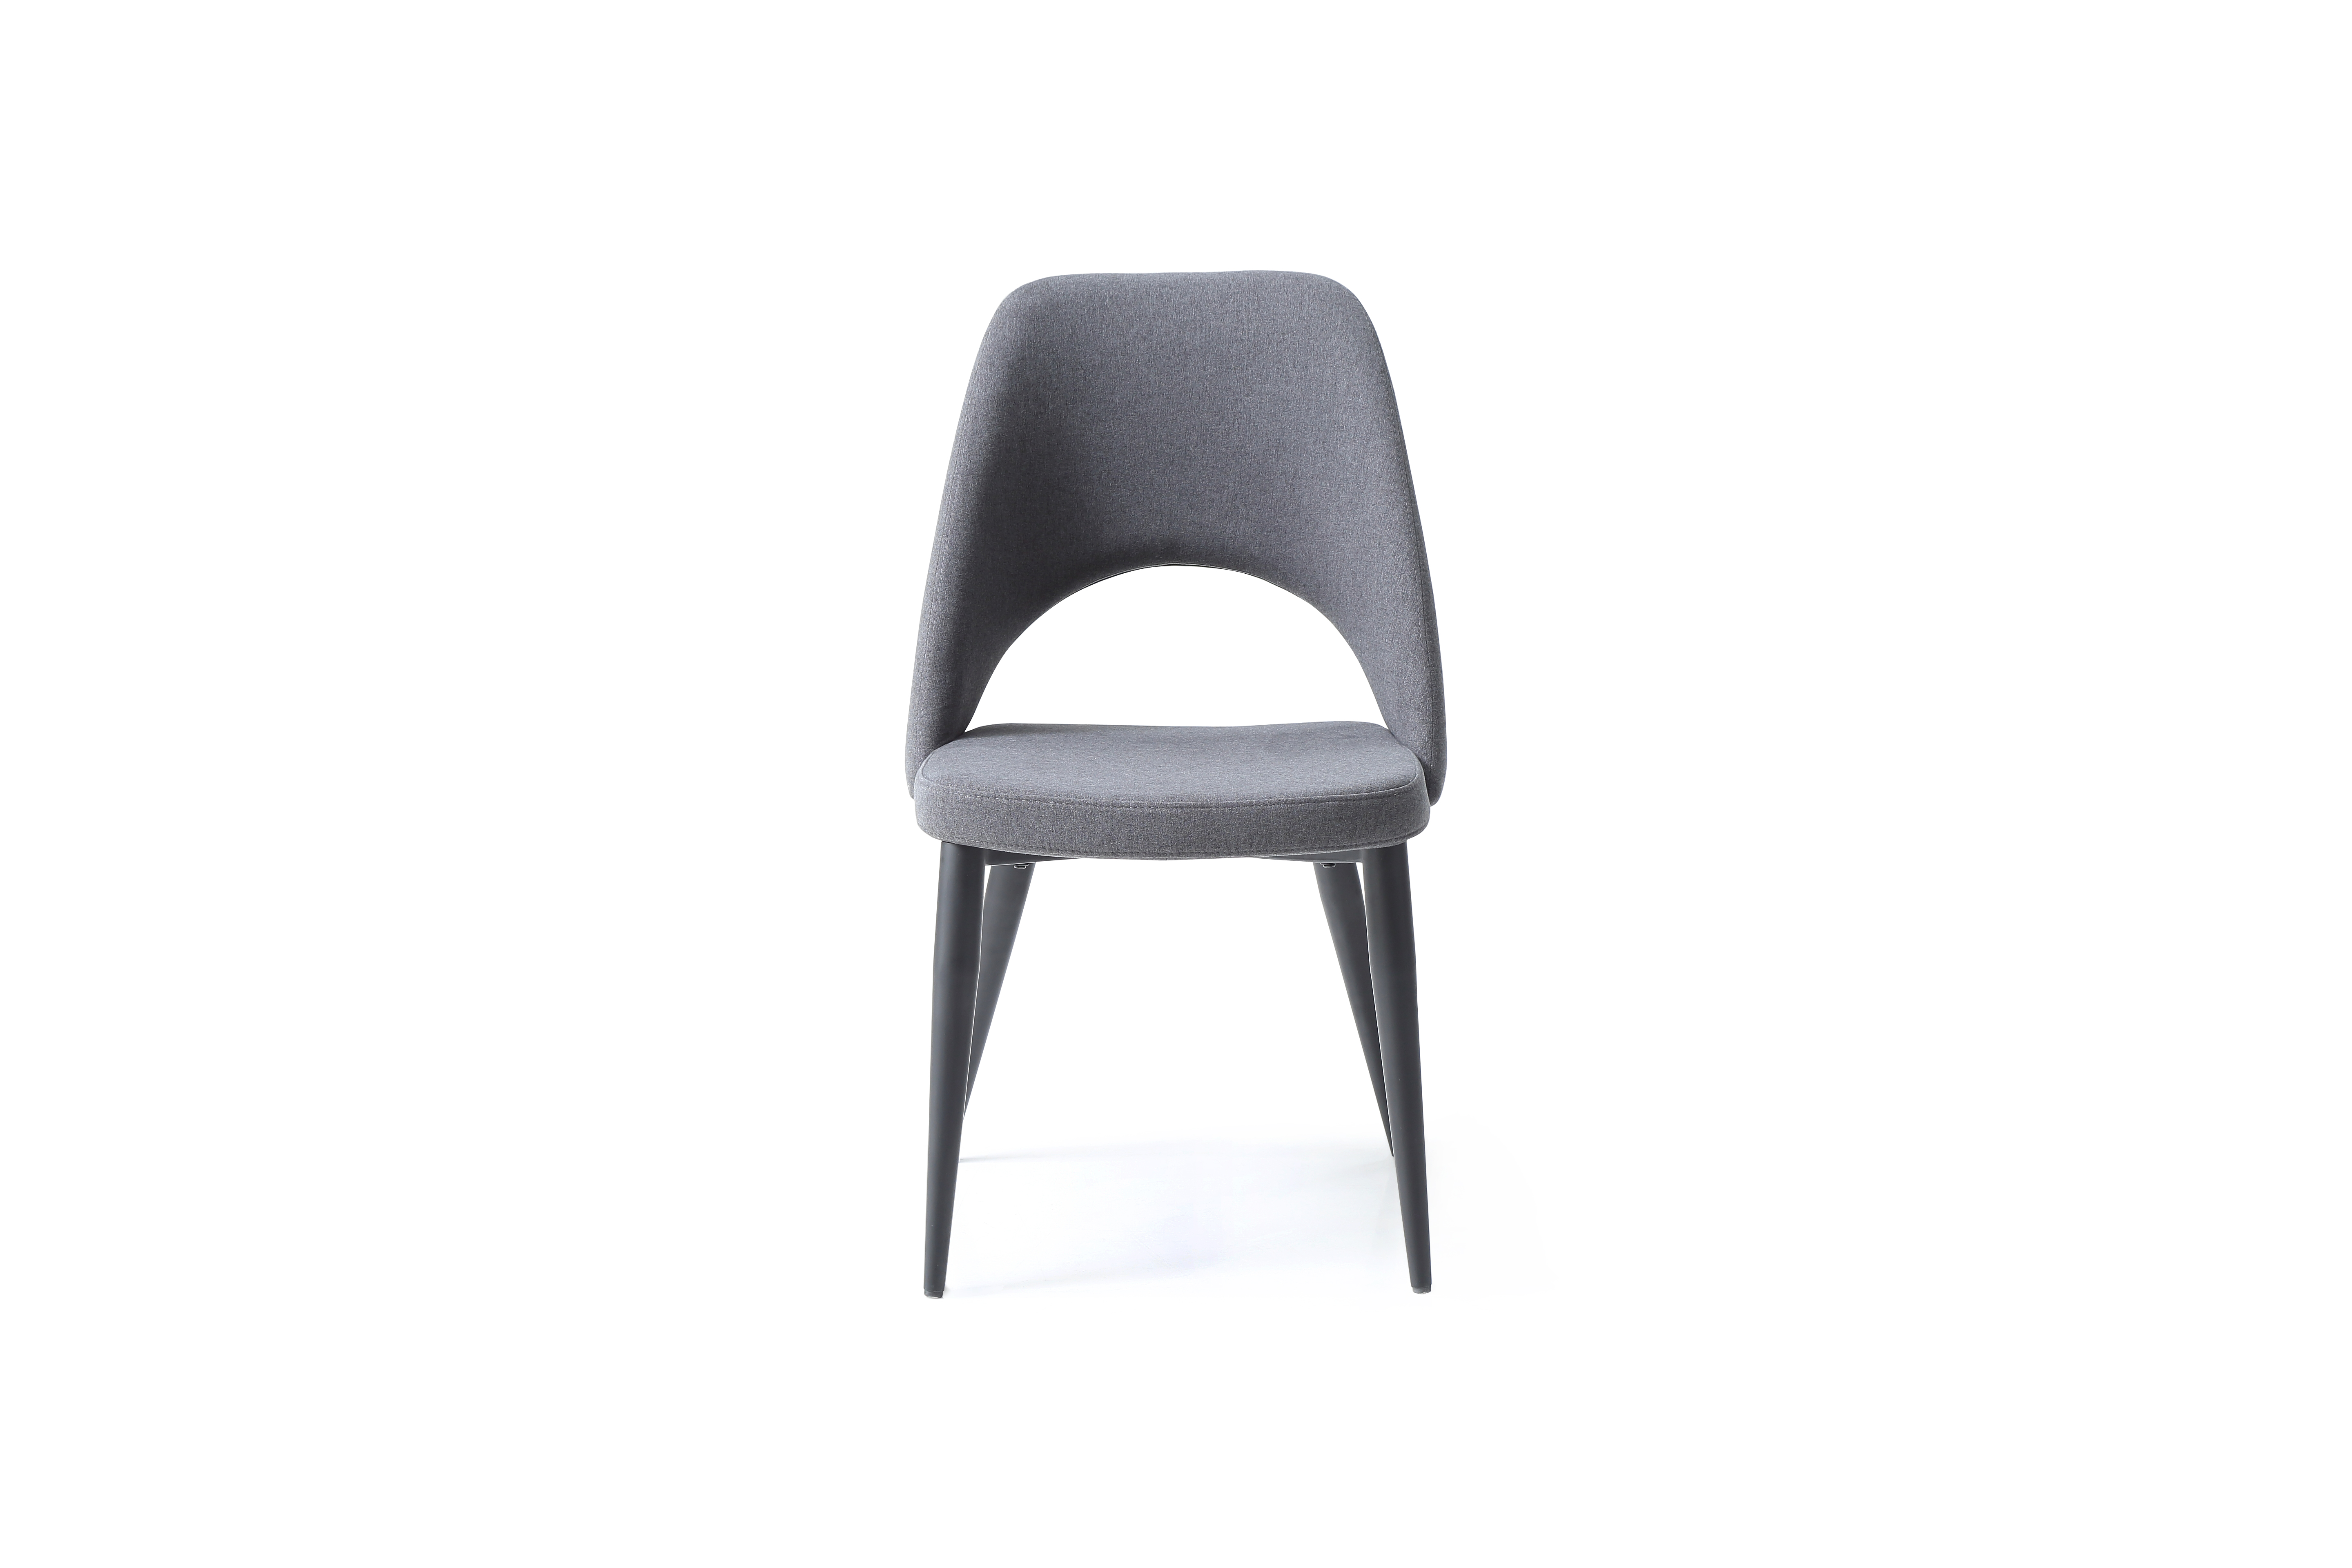 whiteline audrey set of 2 dining chair in blue navy dc1473-nvy